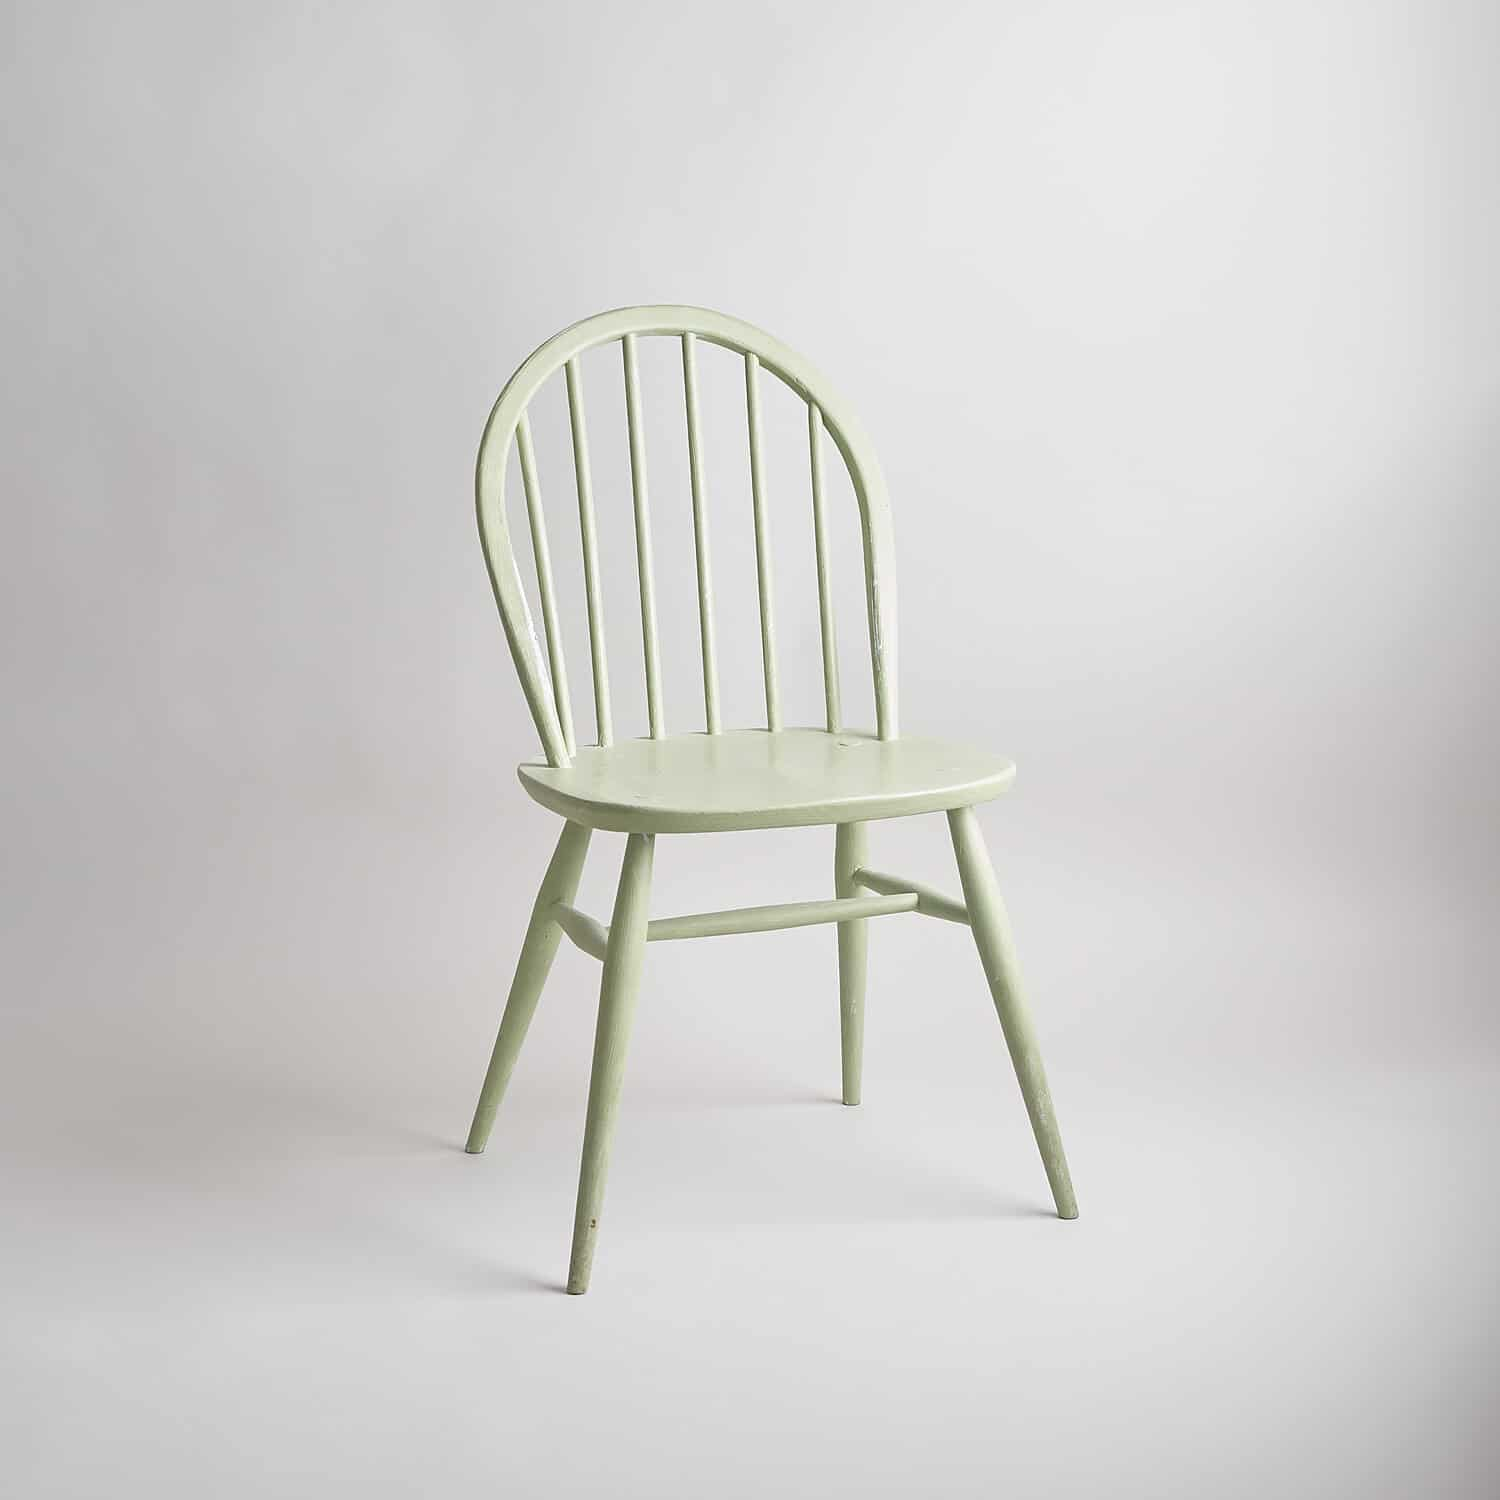 Ercol vintage painted chair part of the stock of furniture in the studio